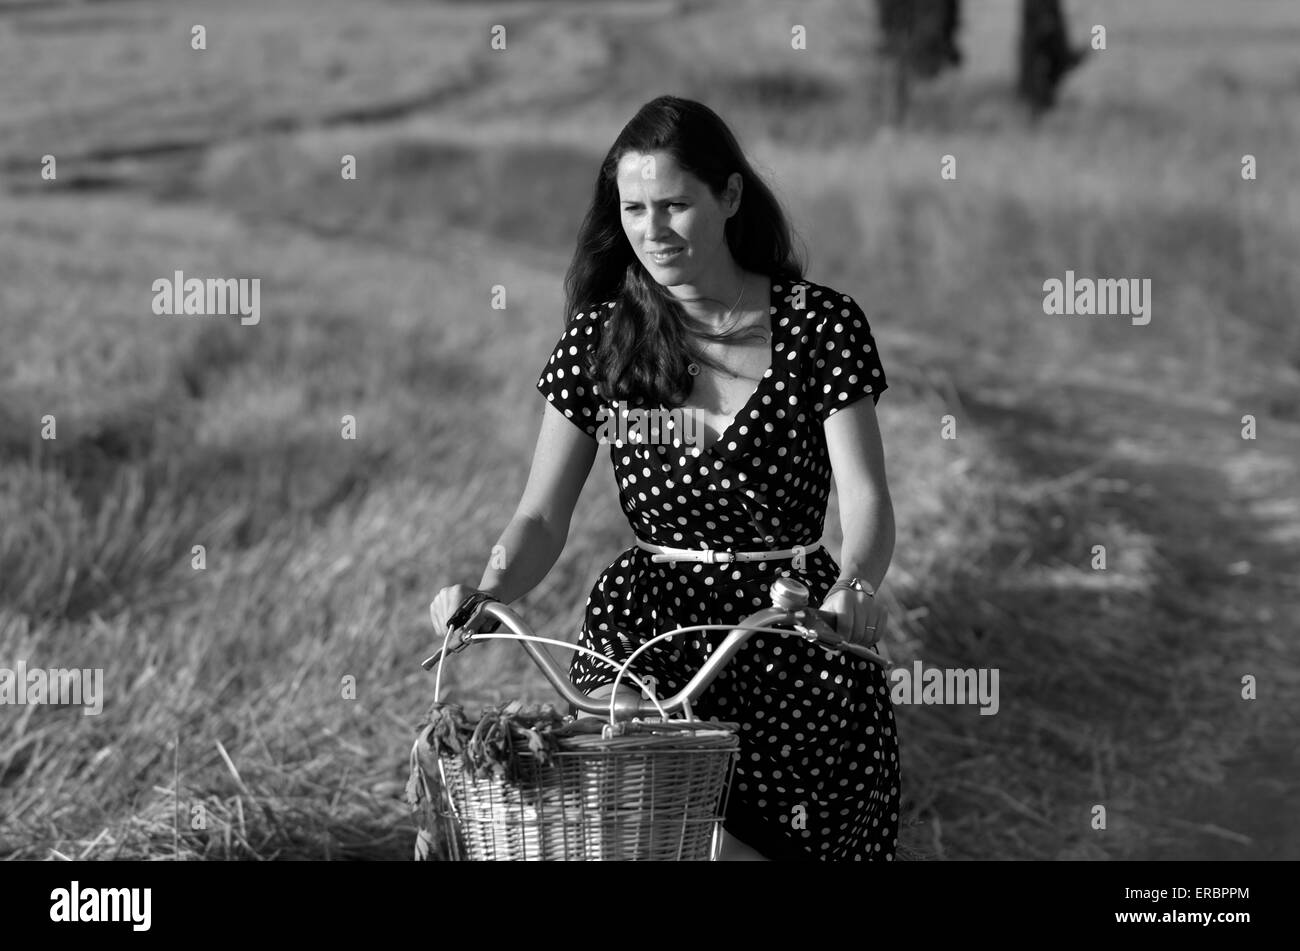 Young woman wearing a dress riding vintage bicycle in the field during sunset on hot summer day. Concept photo woman - Stock Image